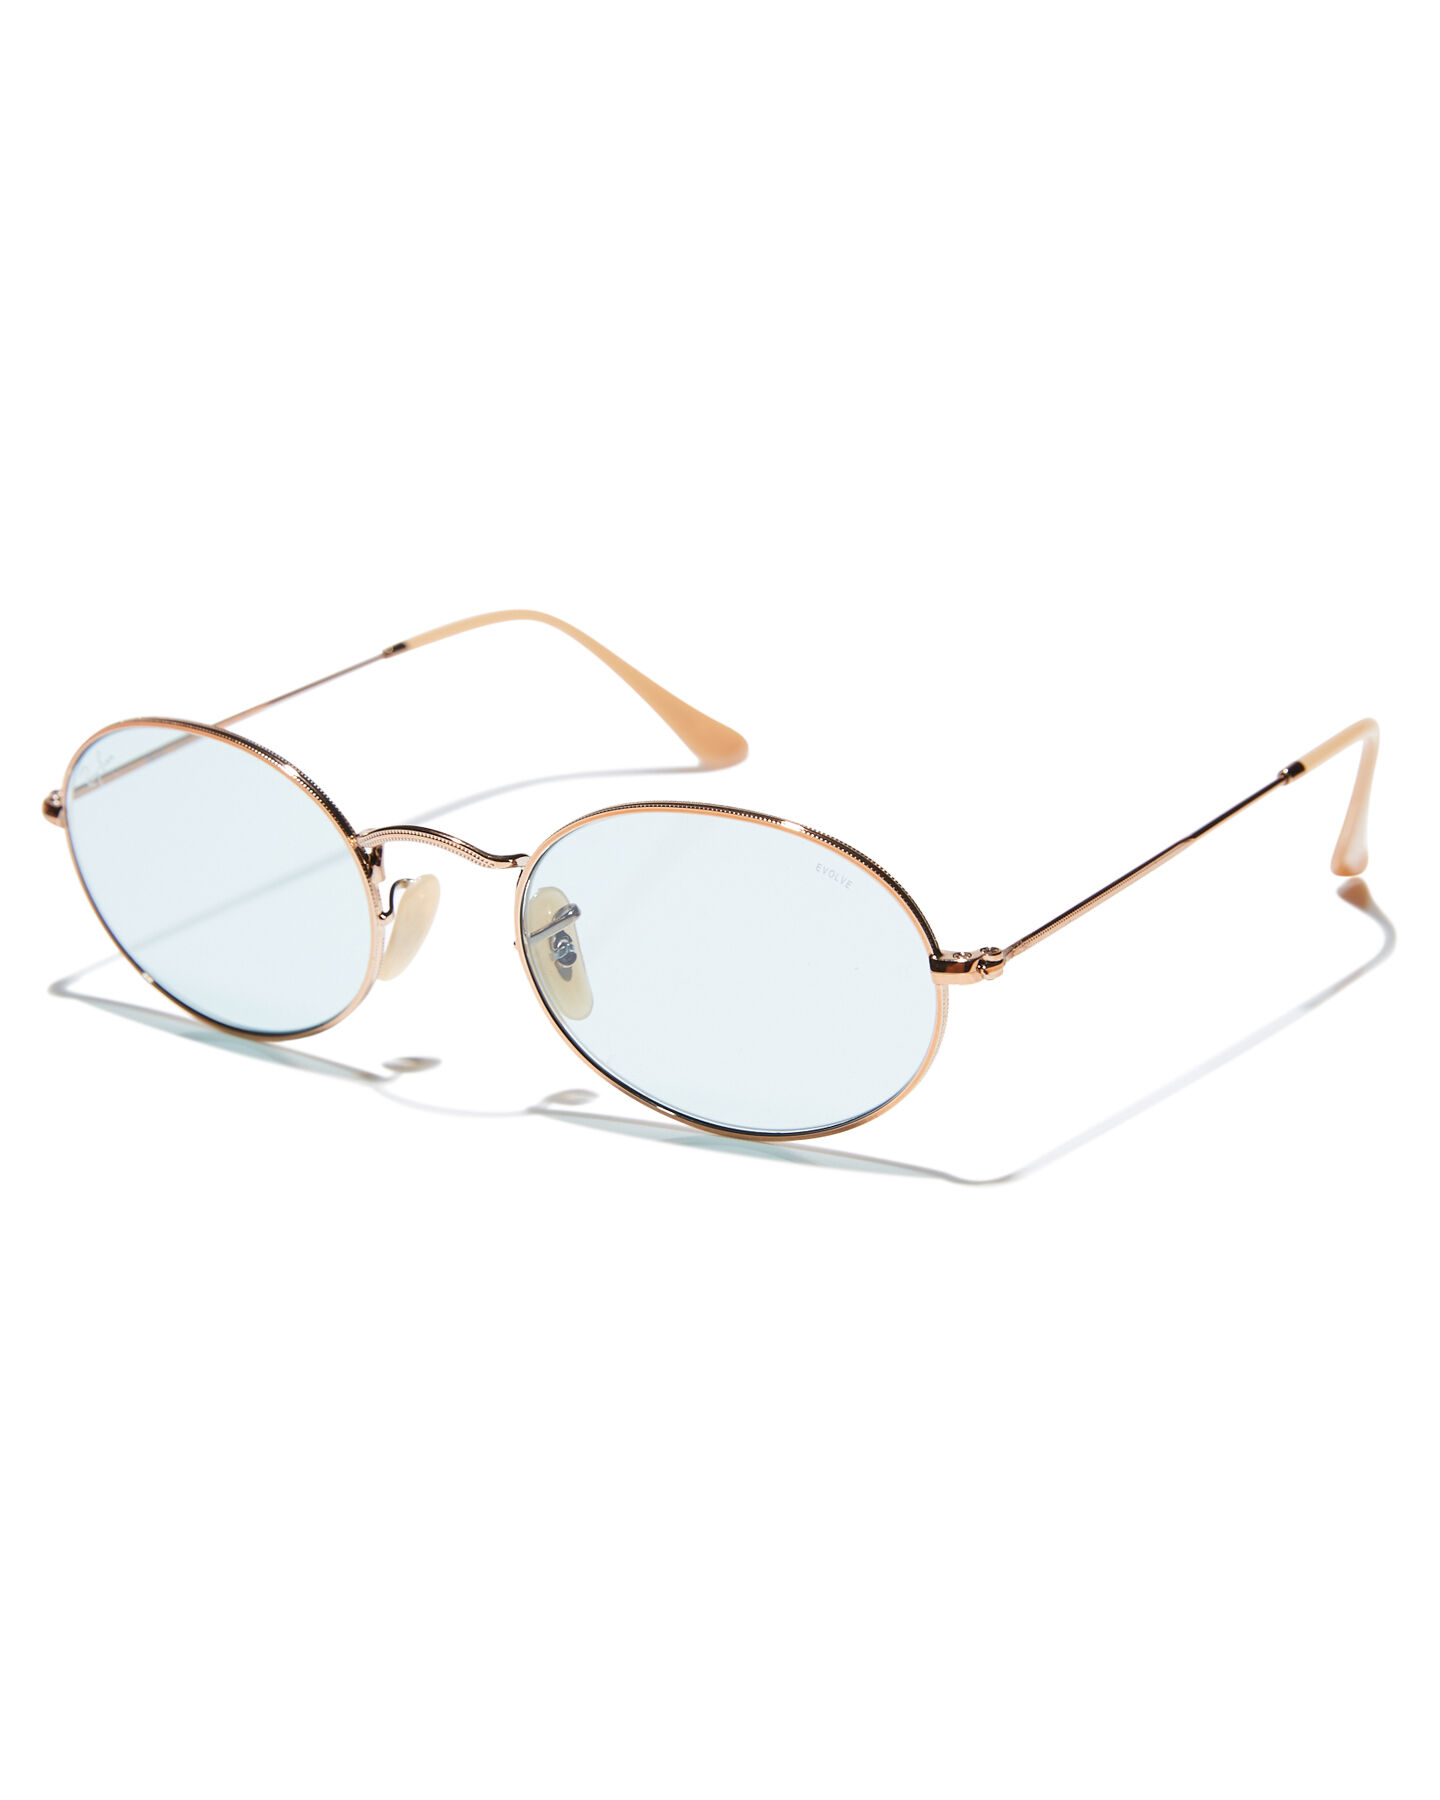 ray ban Ray-Ban RB3026 copper light blue mens accessories ray ban sunglasses 0rb3547ncoblu